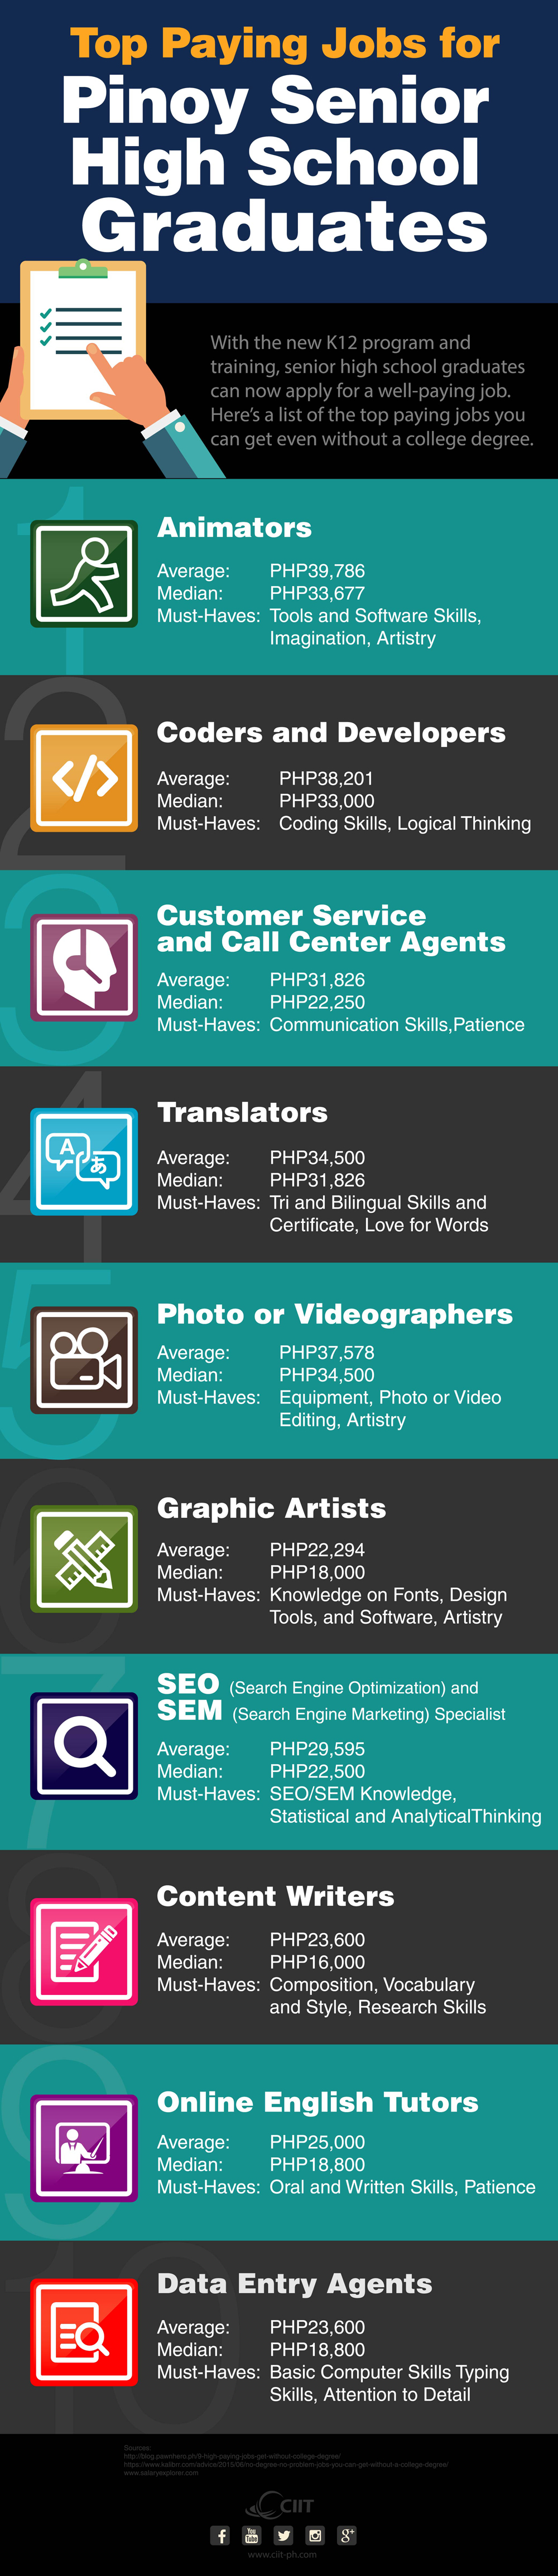 k12 animation school exposes top paying jobs for shs graduates top paying jobs k12 animation school infographic